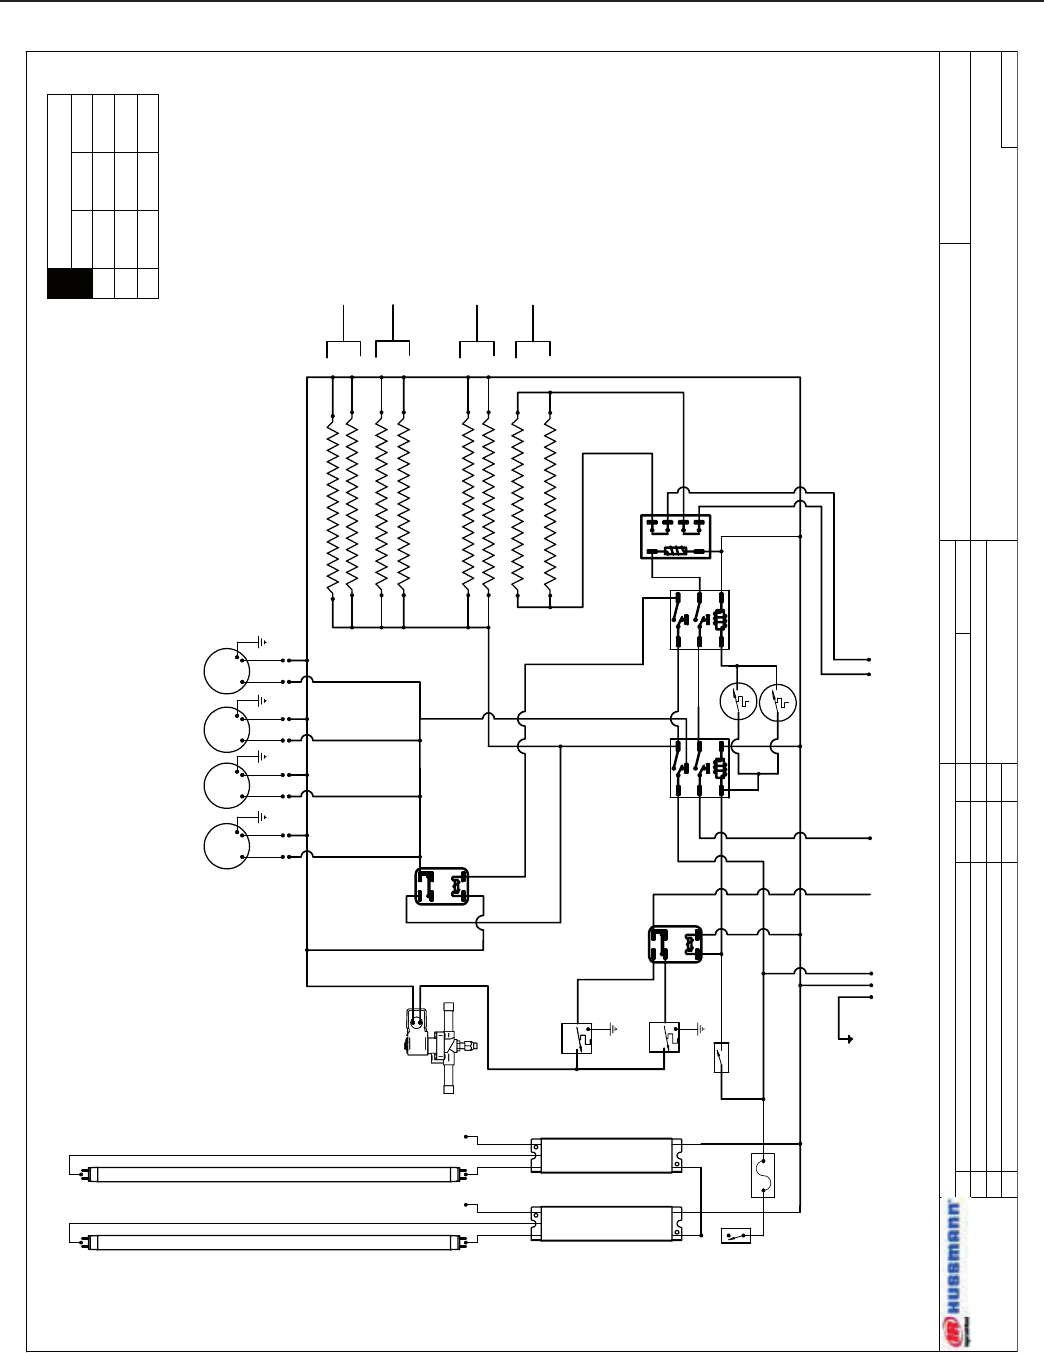 6b0c3921 3432 43fa ada4 bfb9776e5084 bgc page 12 of hussman refrigerator fmss l user guide manualsonline com hussmann rl5 wiring diagram at crackthecode.co